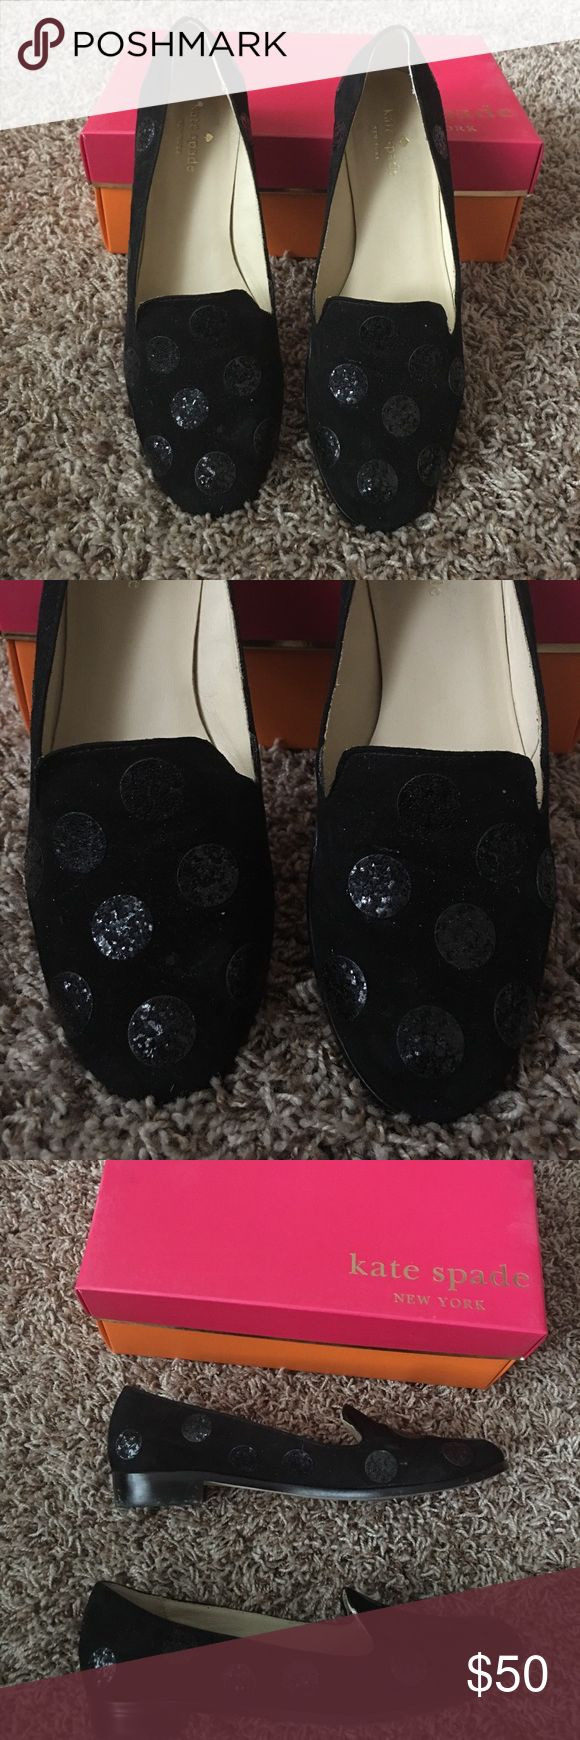 KATE SPADE SUEDE SHOES 👠 SALE In good condition. Suede with black polka dots. kate spade Shoes